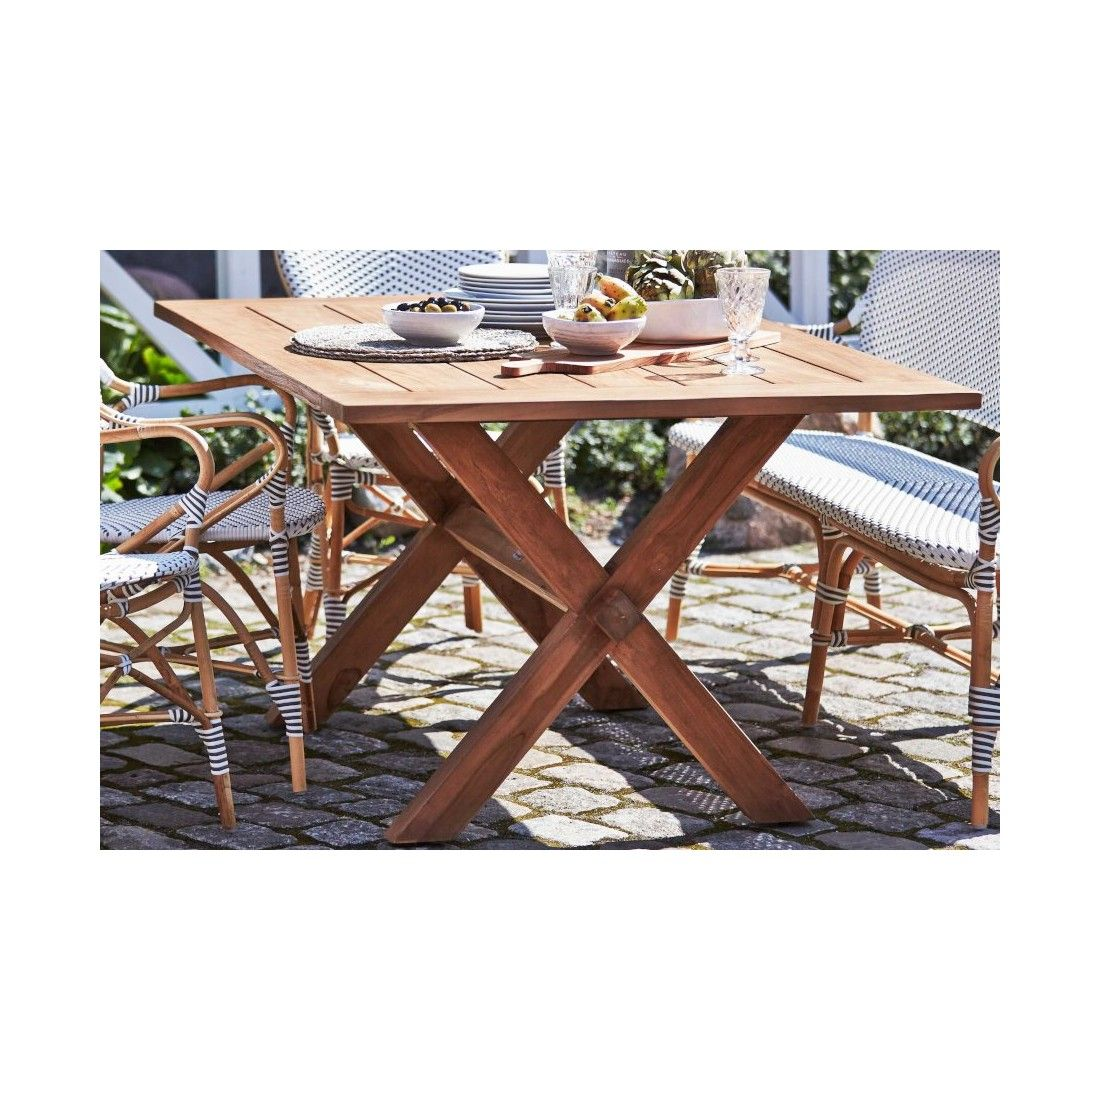 Table en teck ancien 160 cm